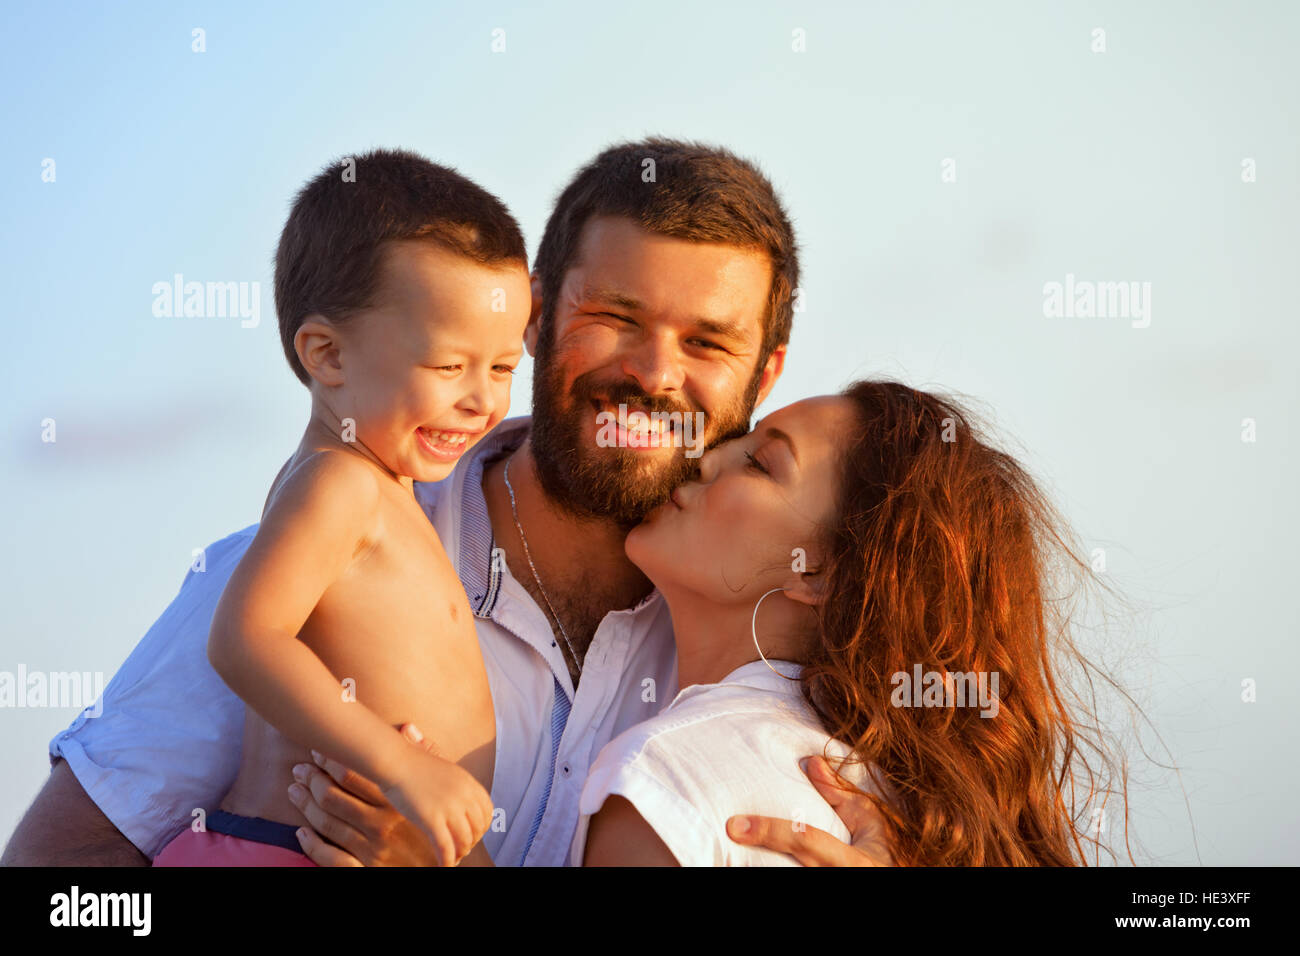 Face portrait of hugging beautiful family - happy mother, father holding baby son on hands walk with fun on sunset - Stock Image